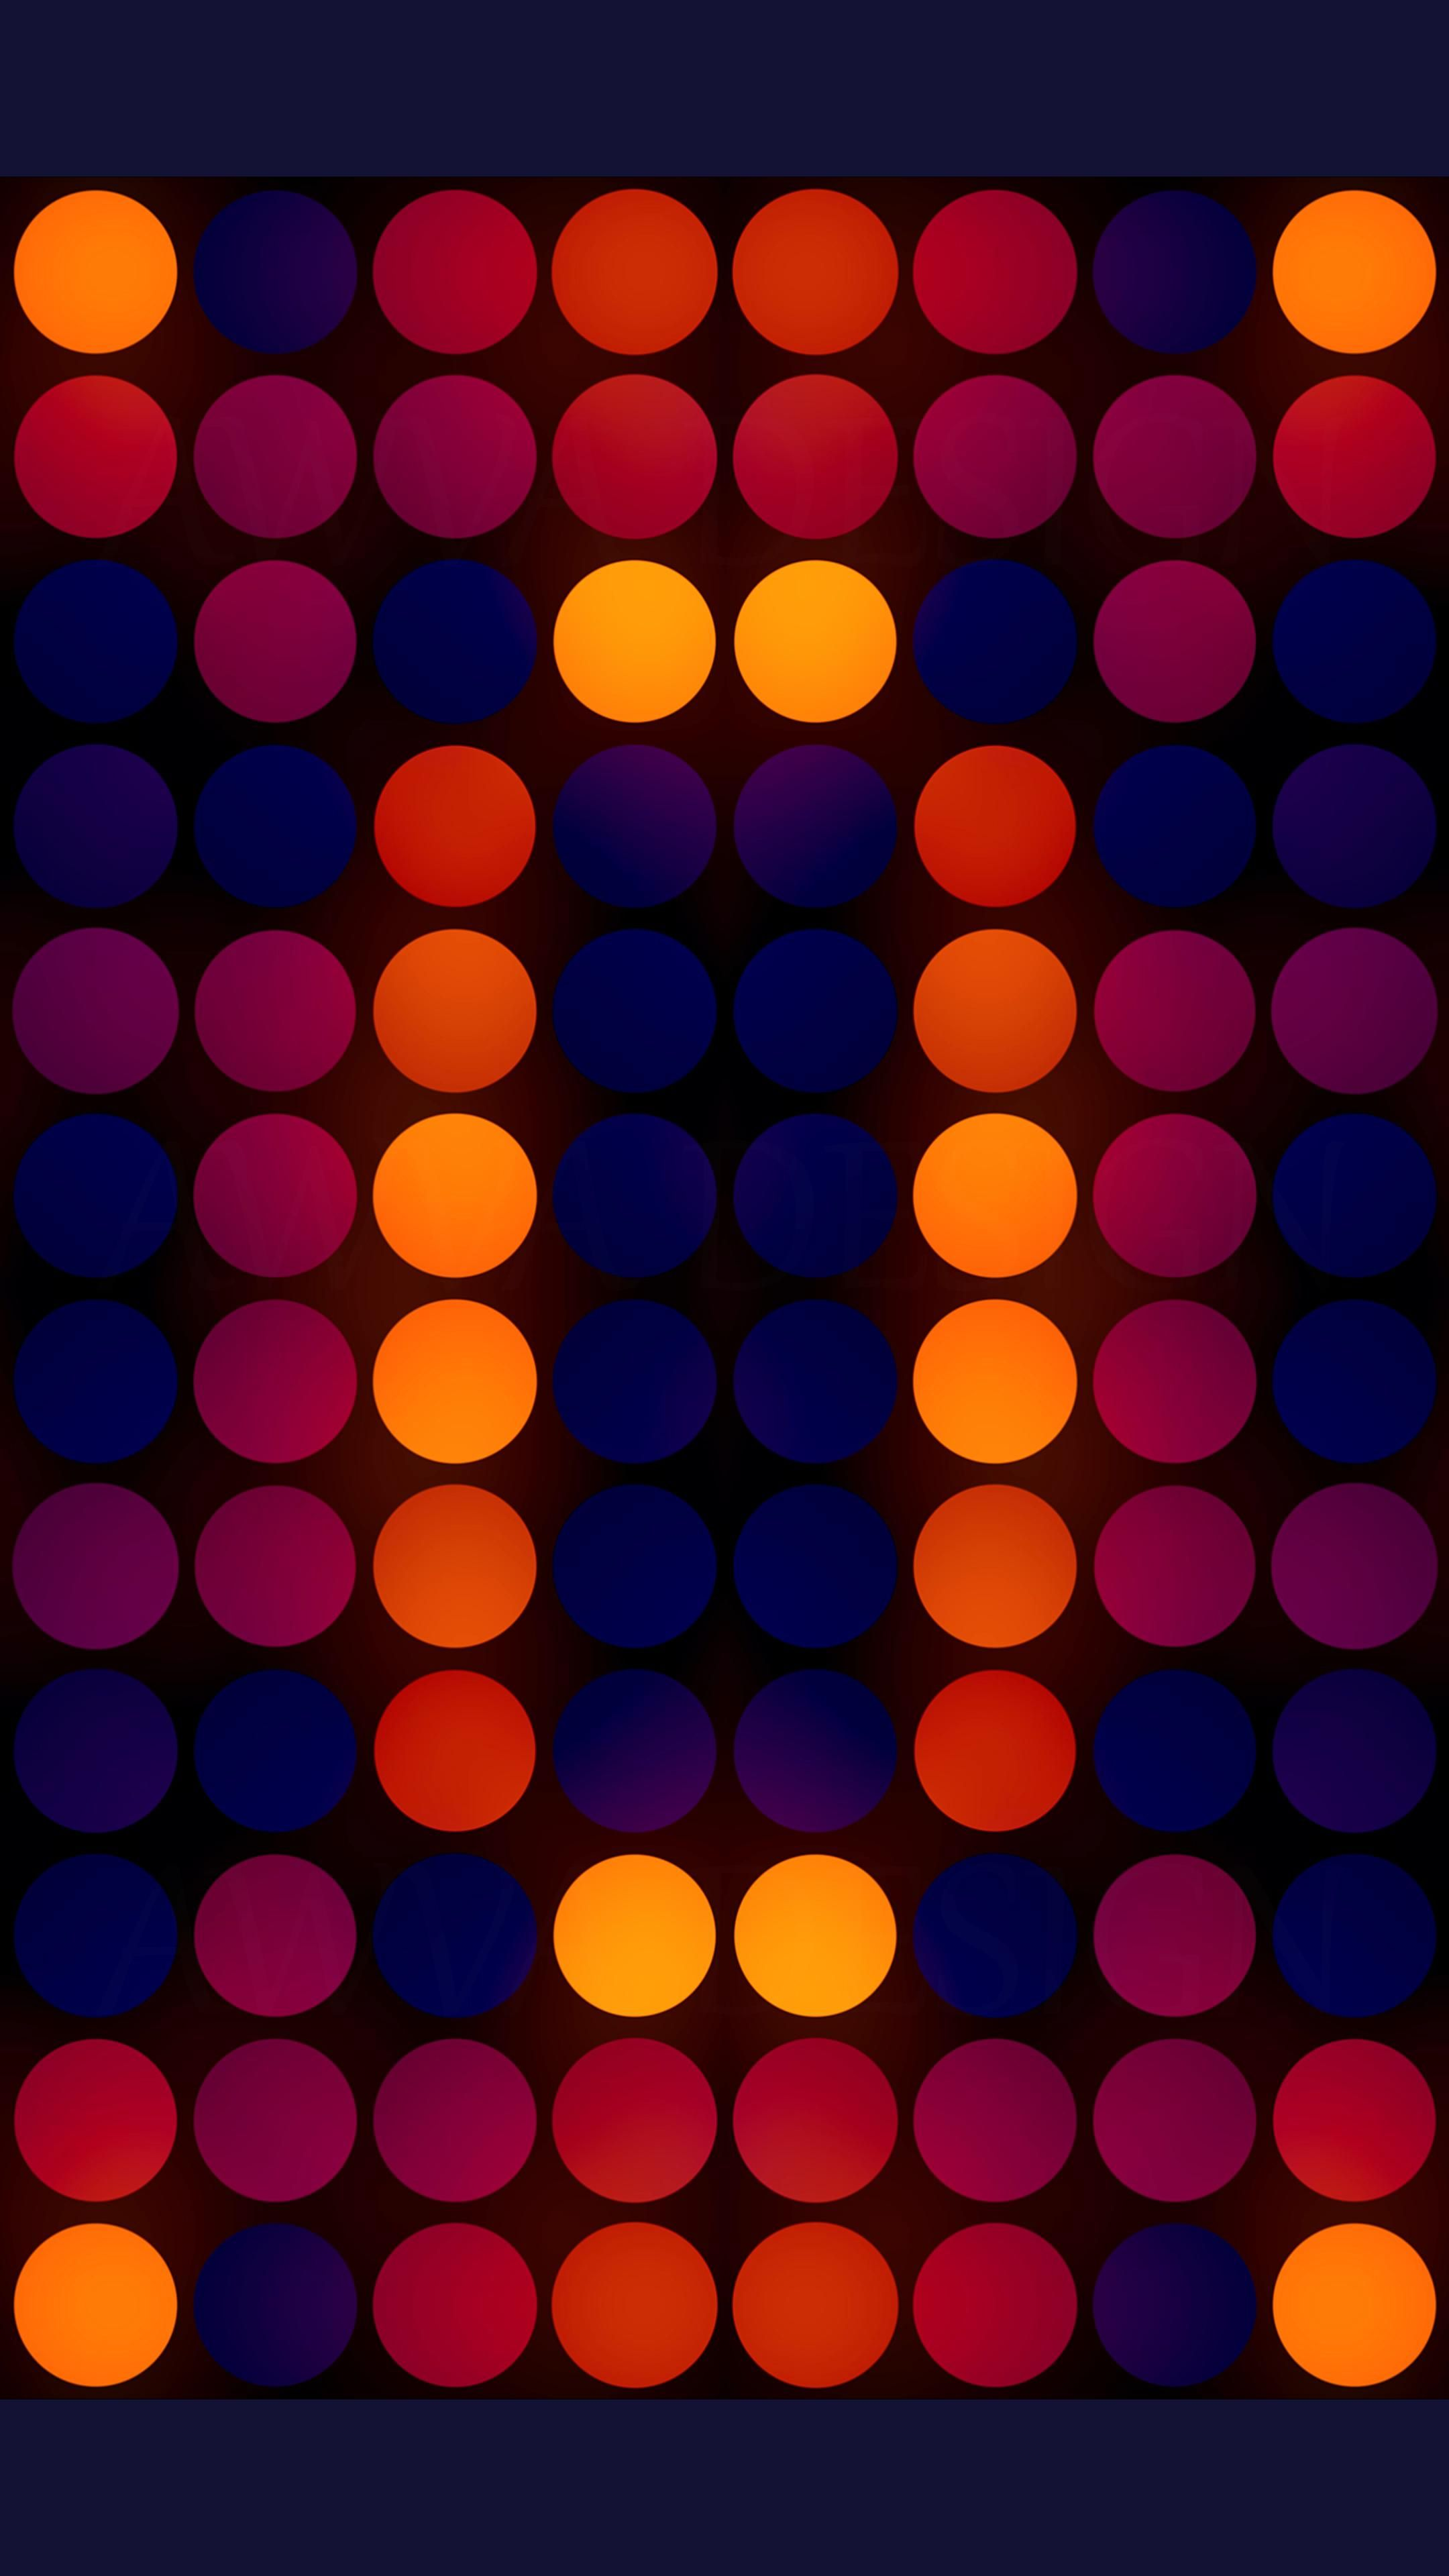 The glowing orange-red kaleidoscope of circles on a dark blue backdrop.